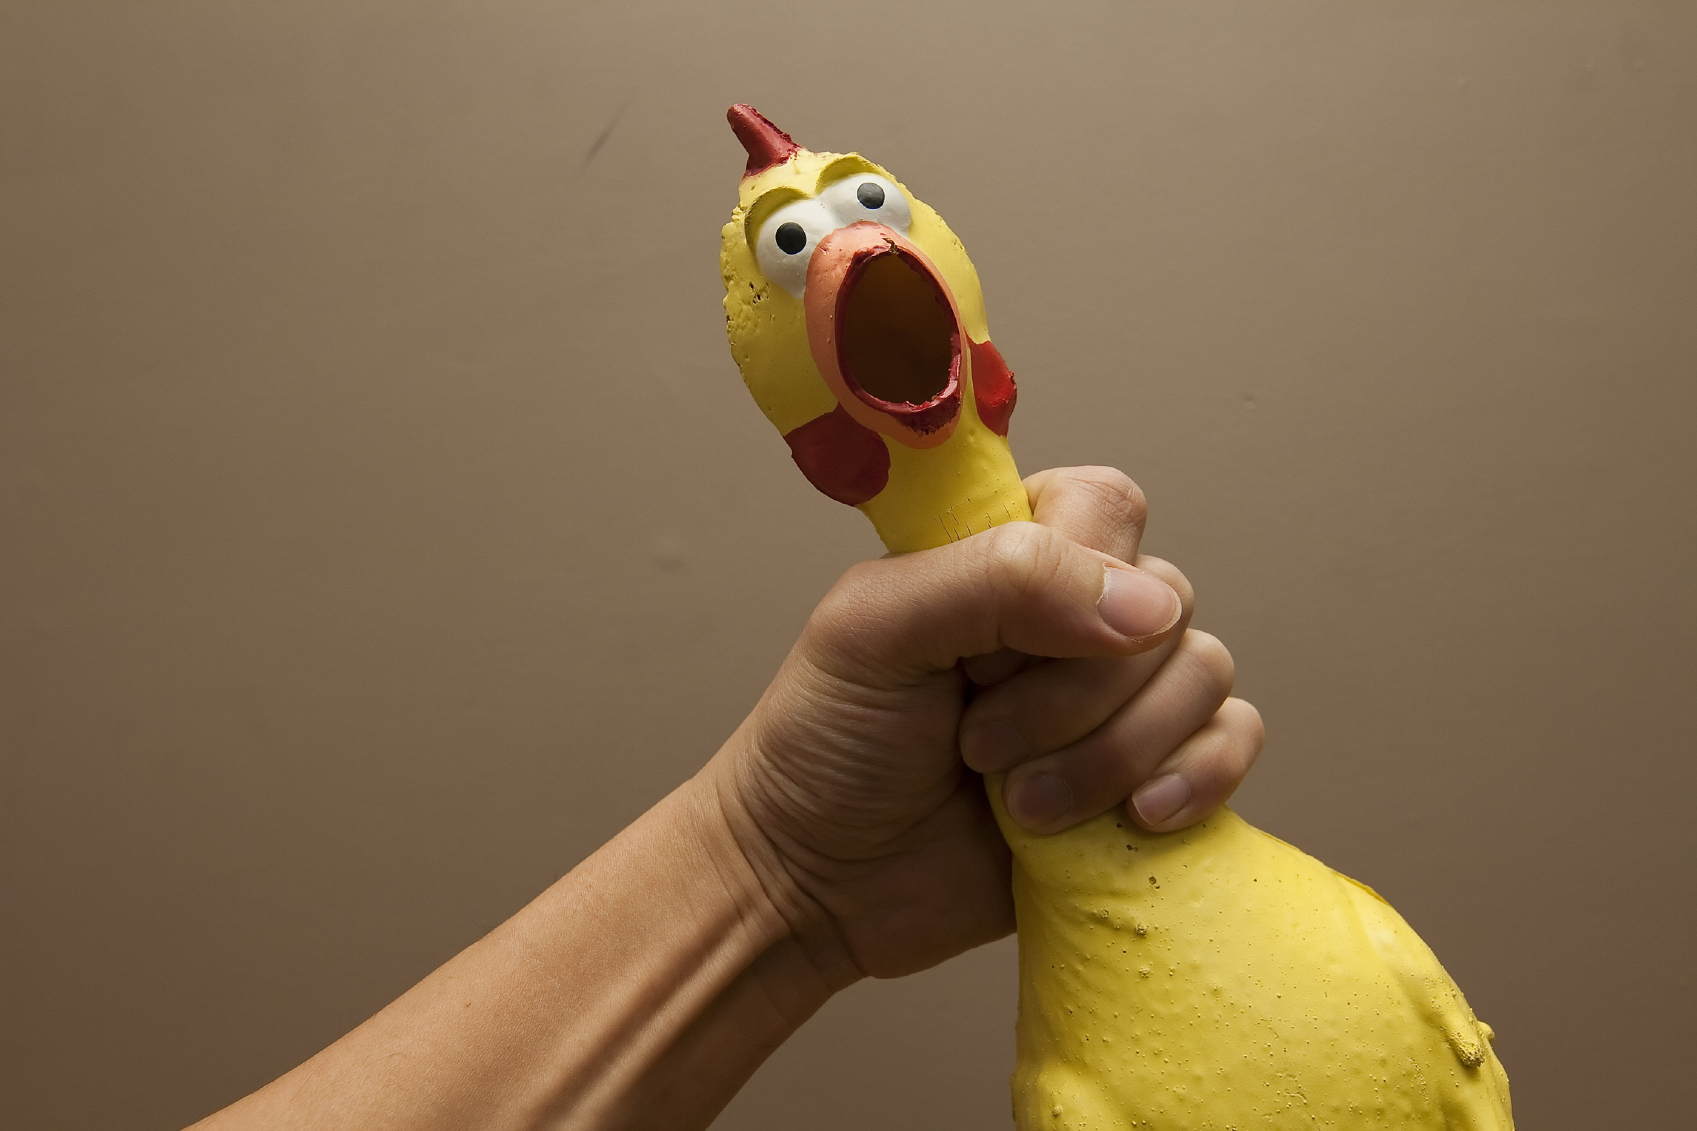 Aroused Man Choking The Chicken